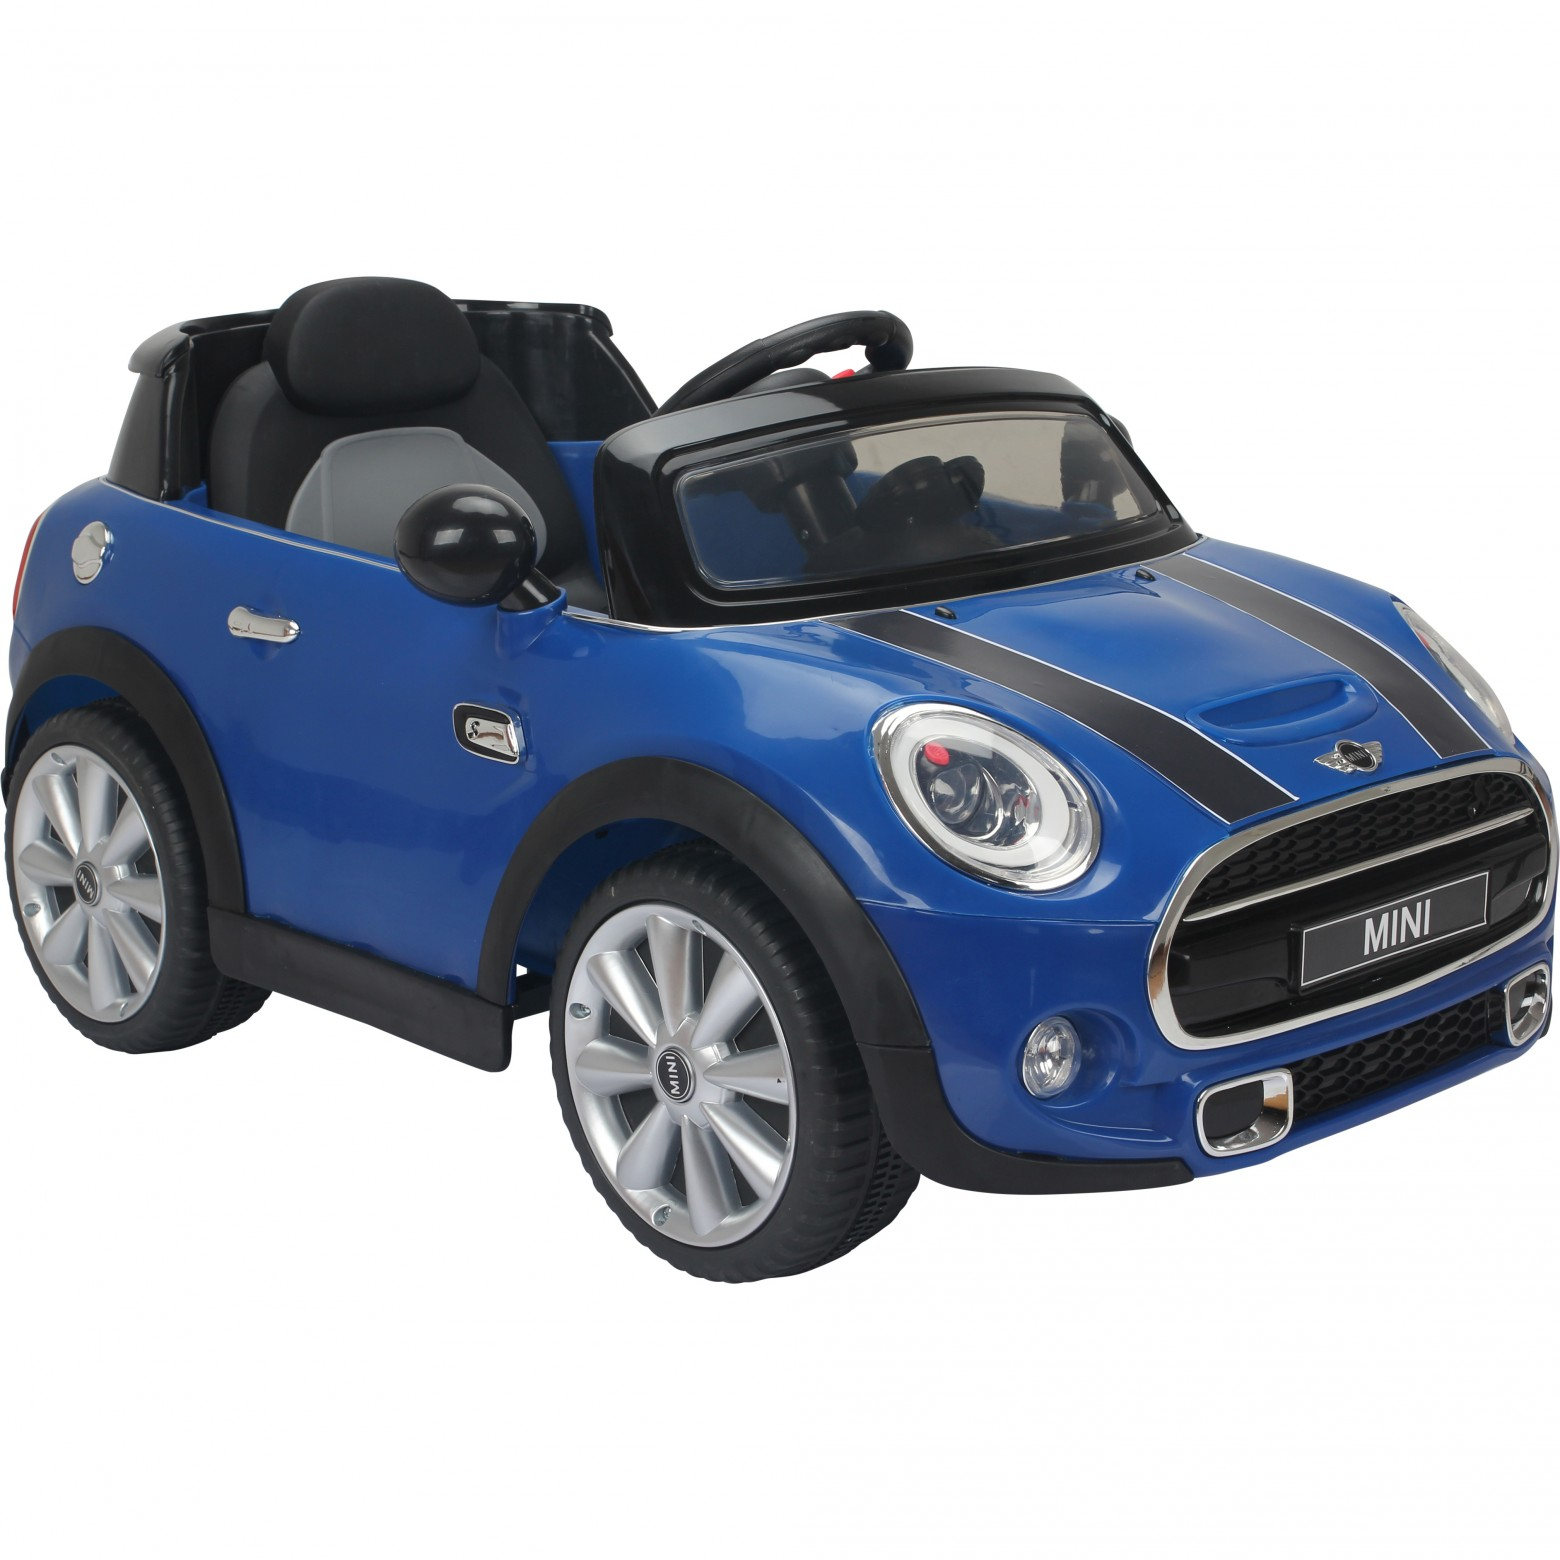 licensed mini cooper s 12v child s ride on car blue